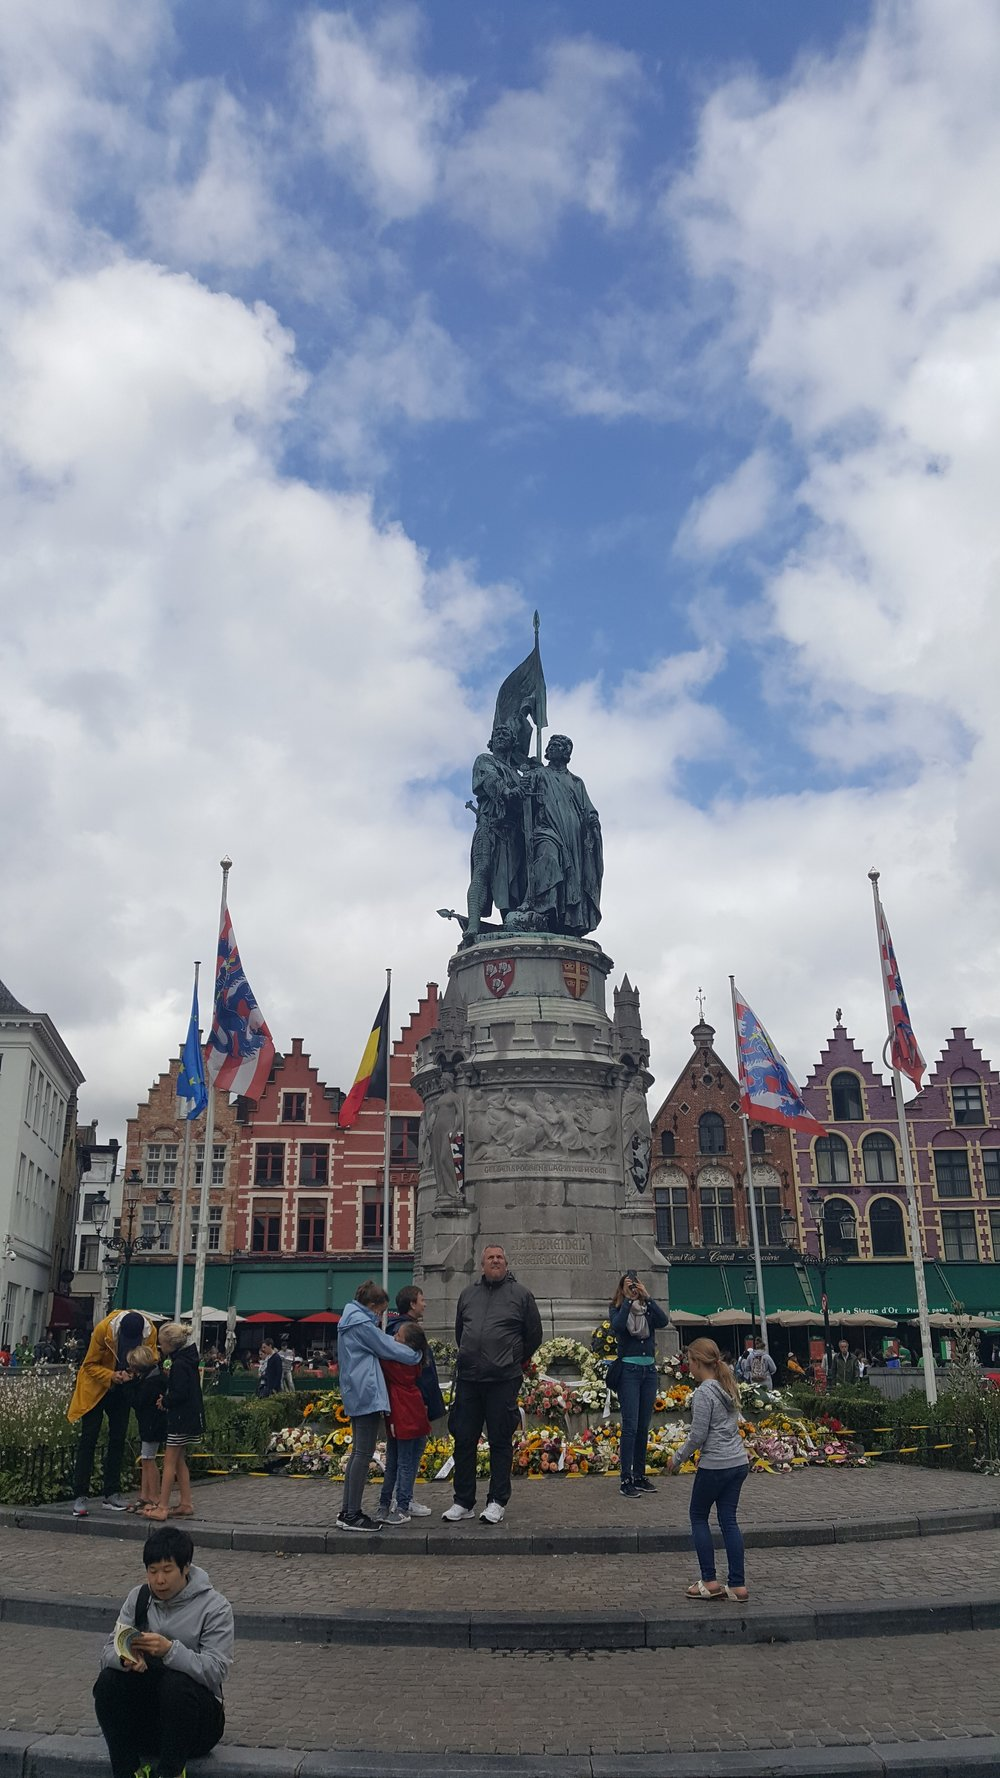 Honoring Jan Breydel and Peter de Coninck - freedom heroes in the struggle against the french in the 14th century. Constructed in 1887 at the height of the Romanticism period.